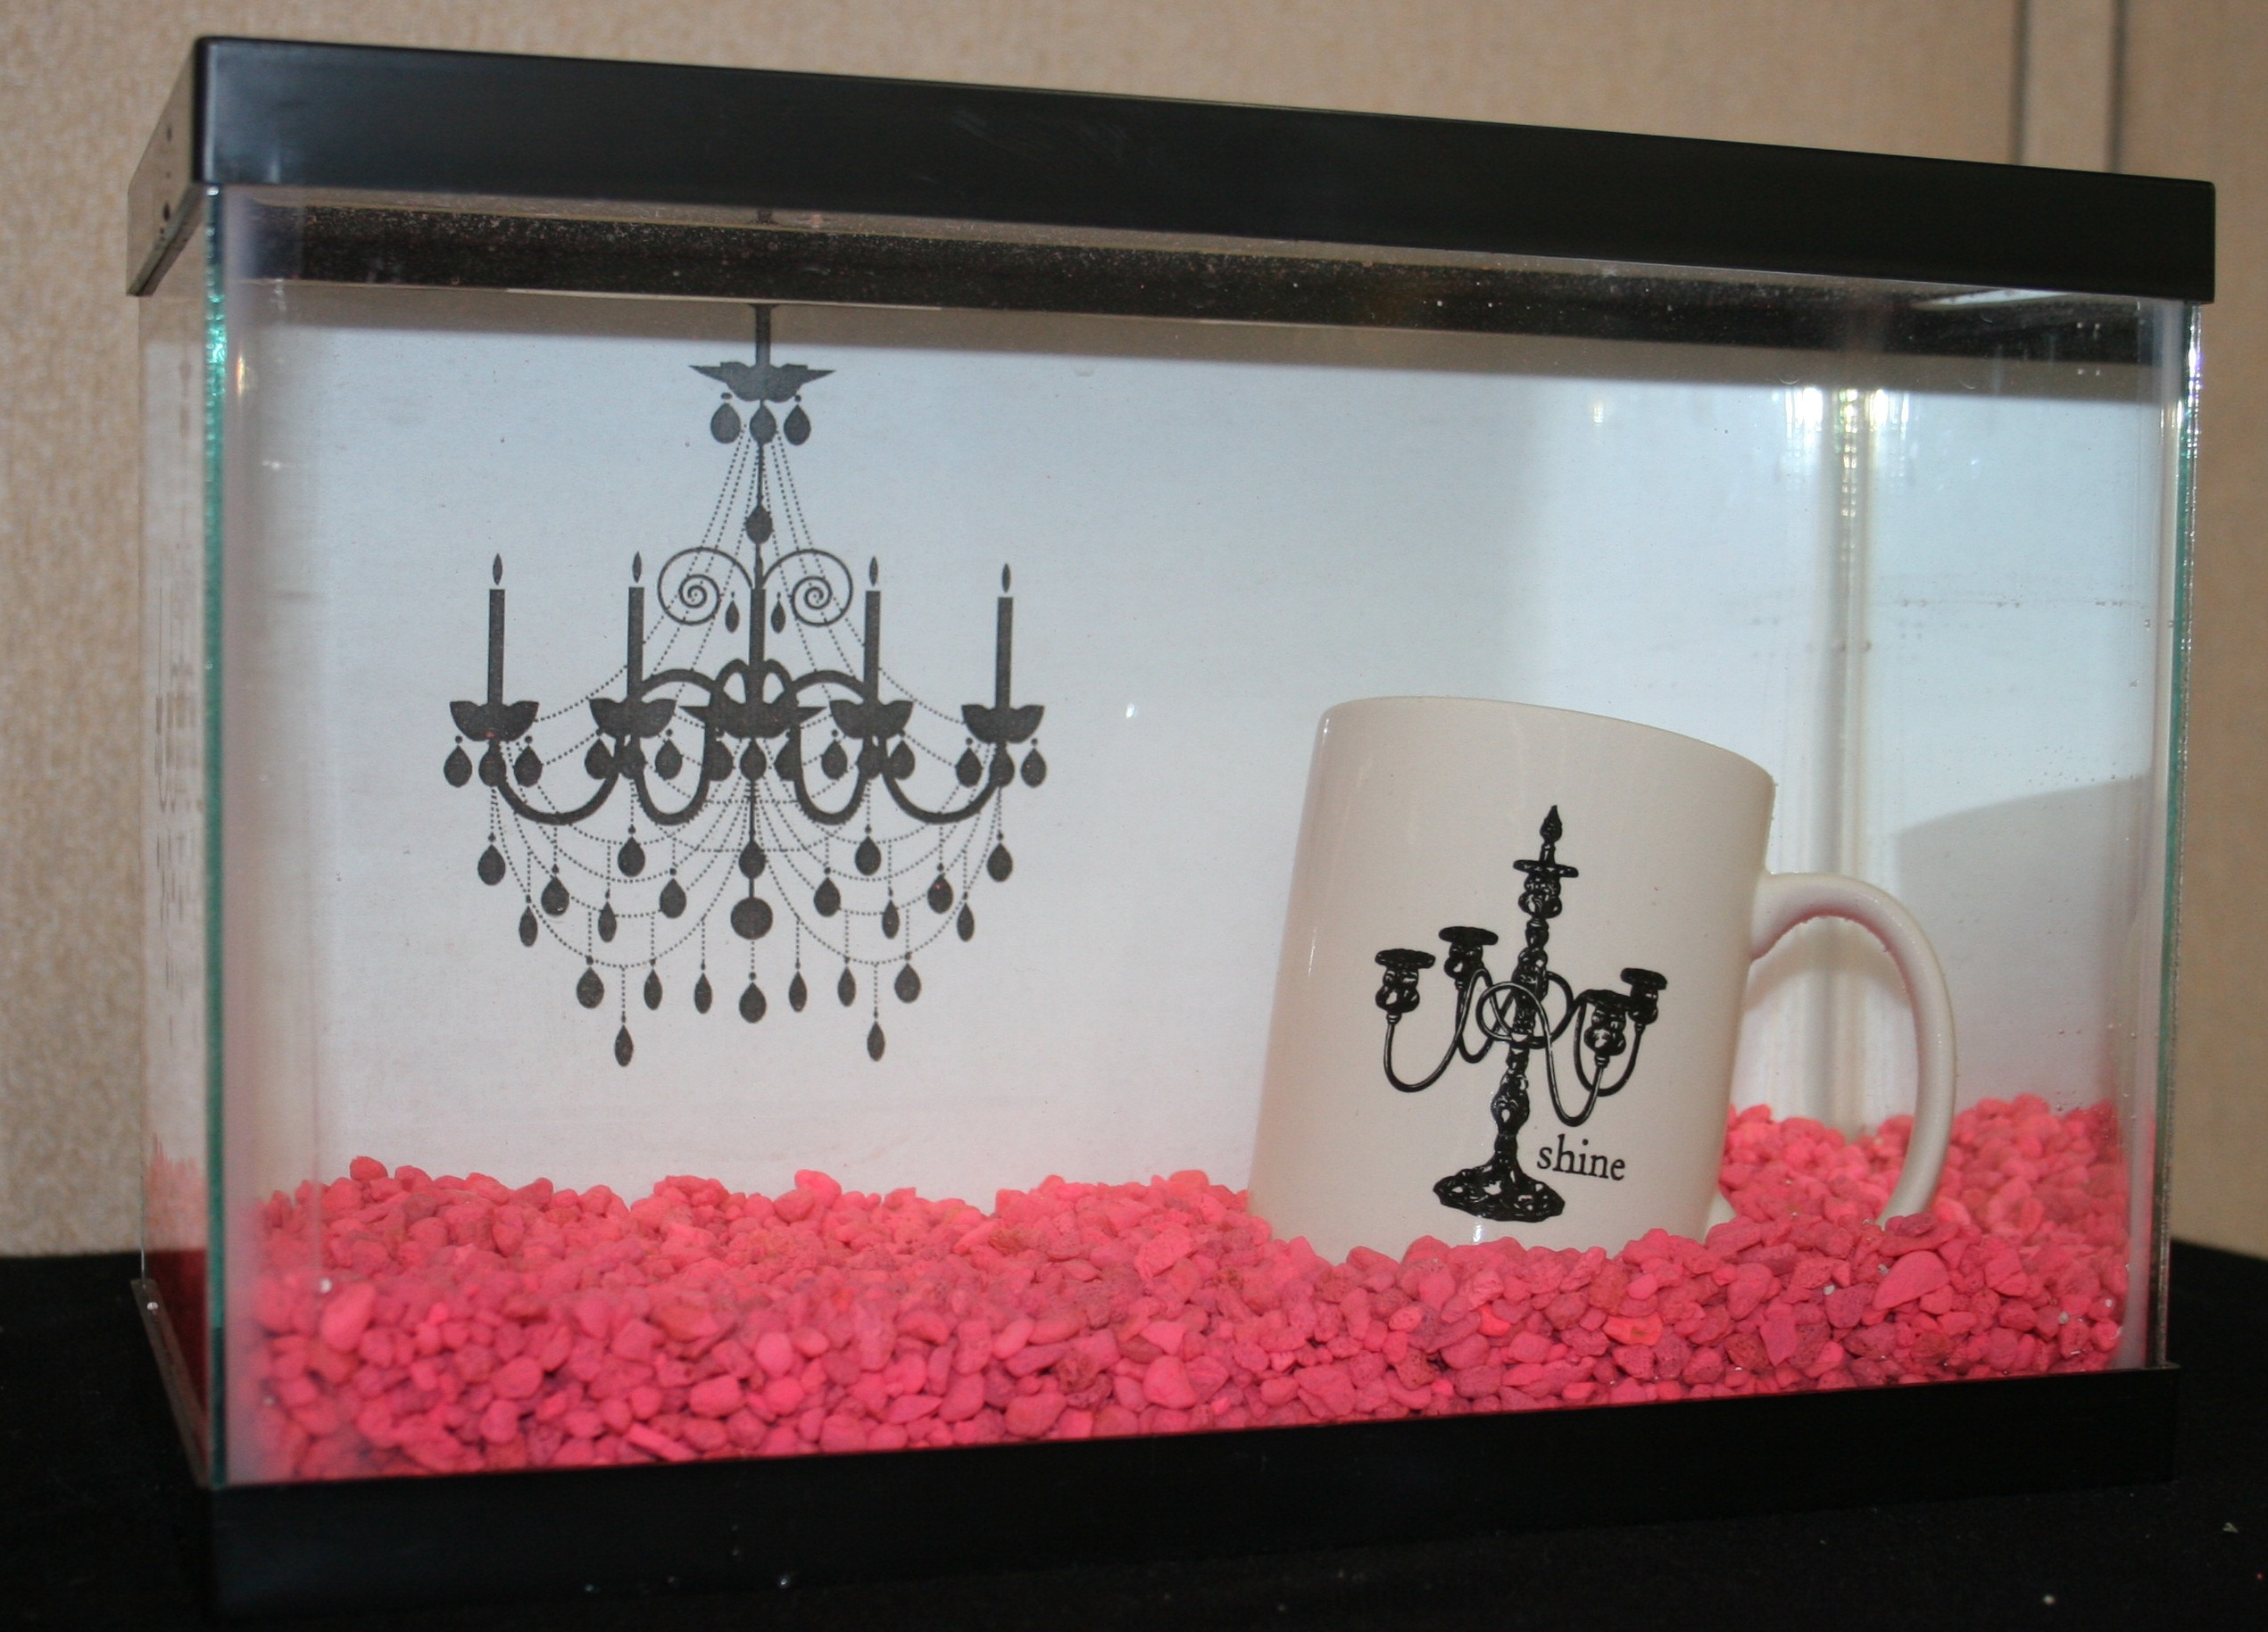 Image gallery homemade fish tank decorations for Homemade fish tank decoration ideas